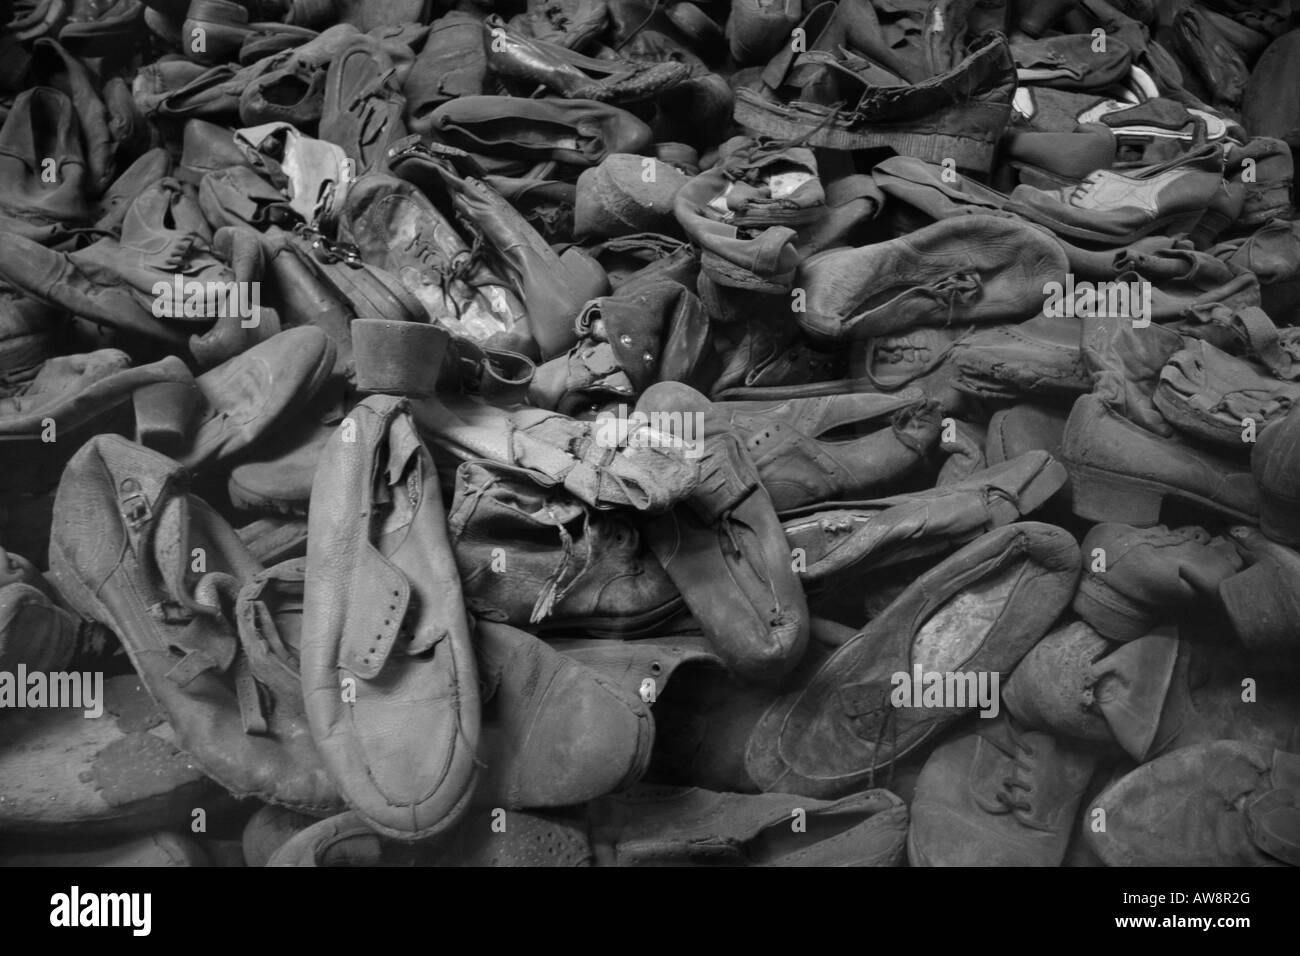 A collection of shoes taken from prisoners at the former Nazi concentration camp at Auschwitz Birkenau, Oswiecim, - Stock Image